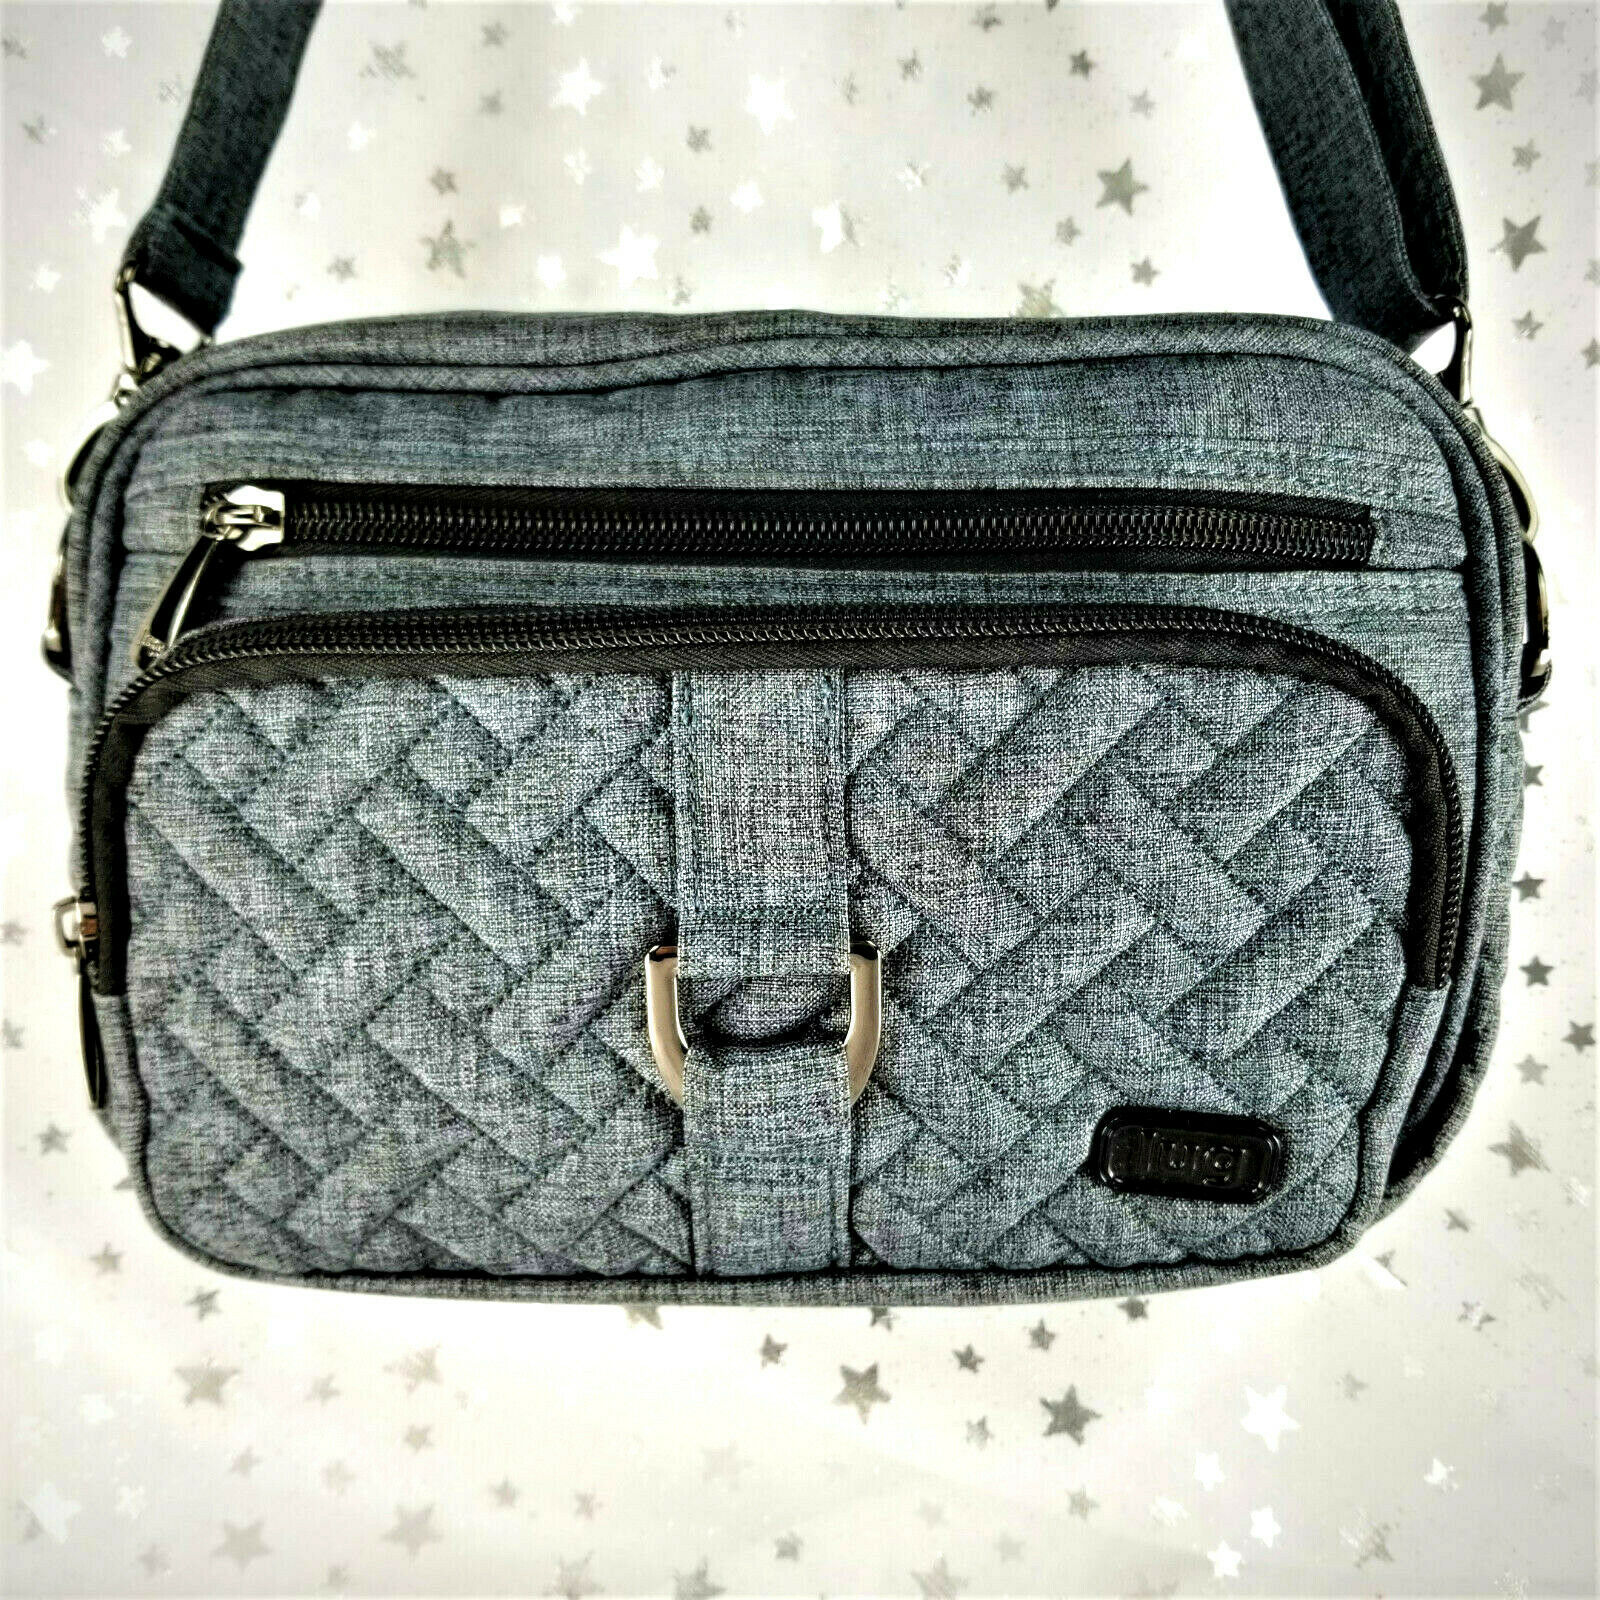 Primary image for Lug CAROUSEL Crossbody Handbag Tote with Long Strap Handle - Heather Gray - NWOT